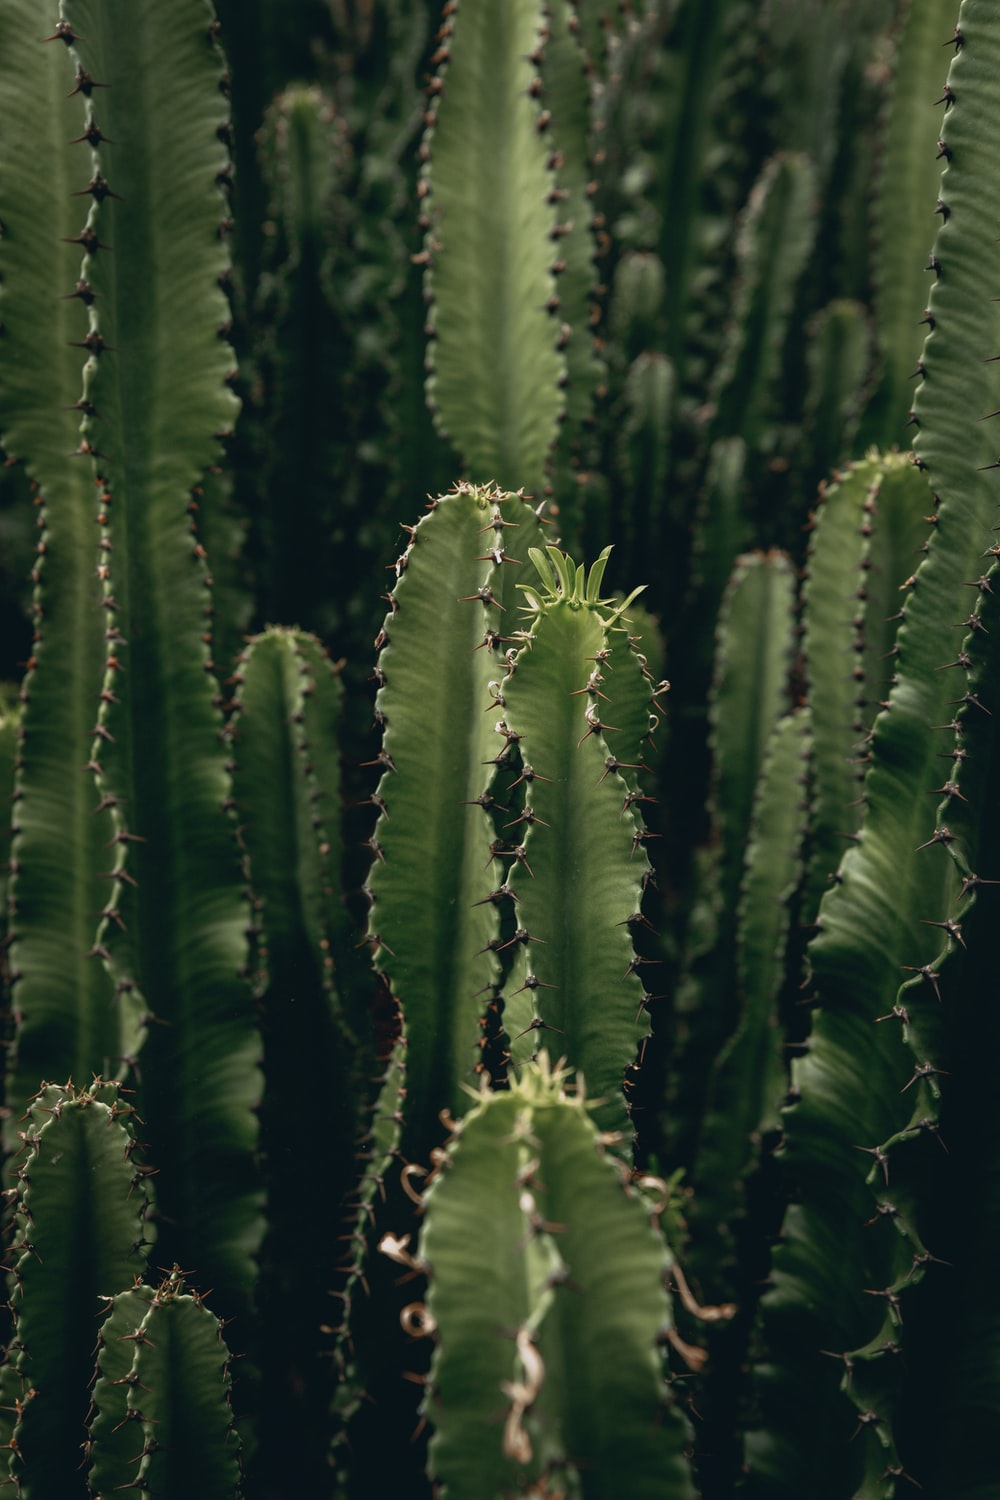 green cactus plants